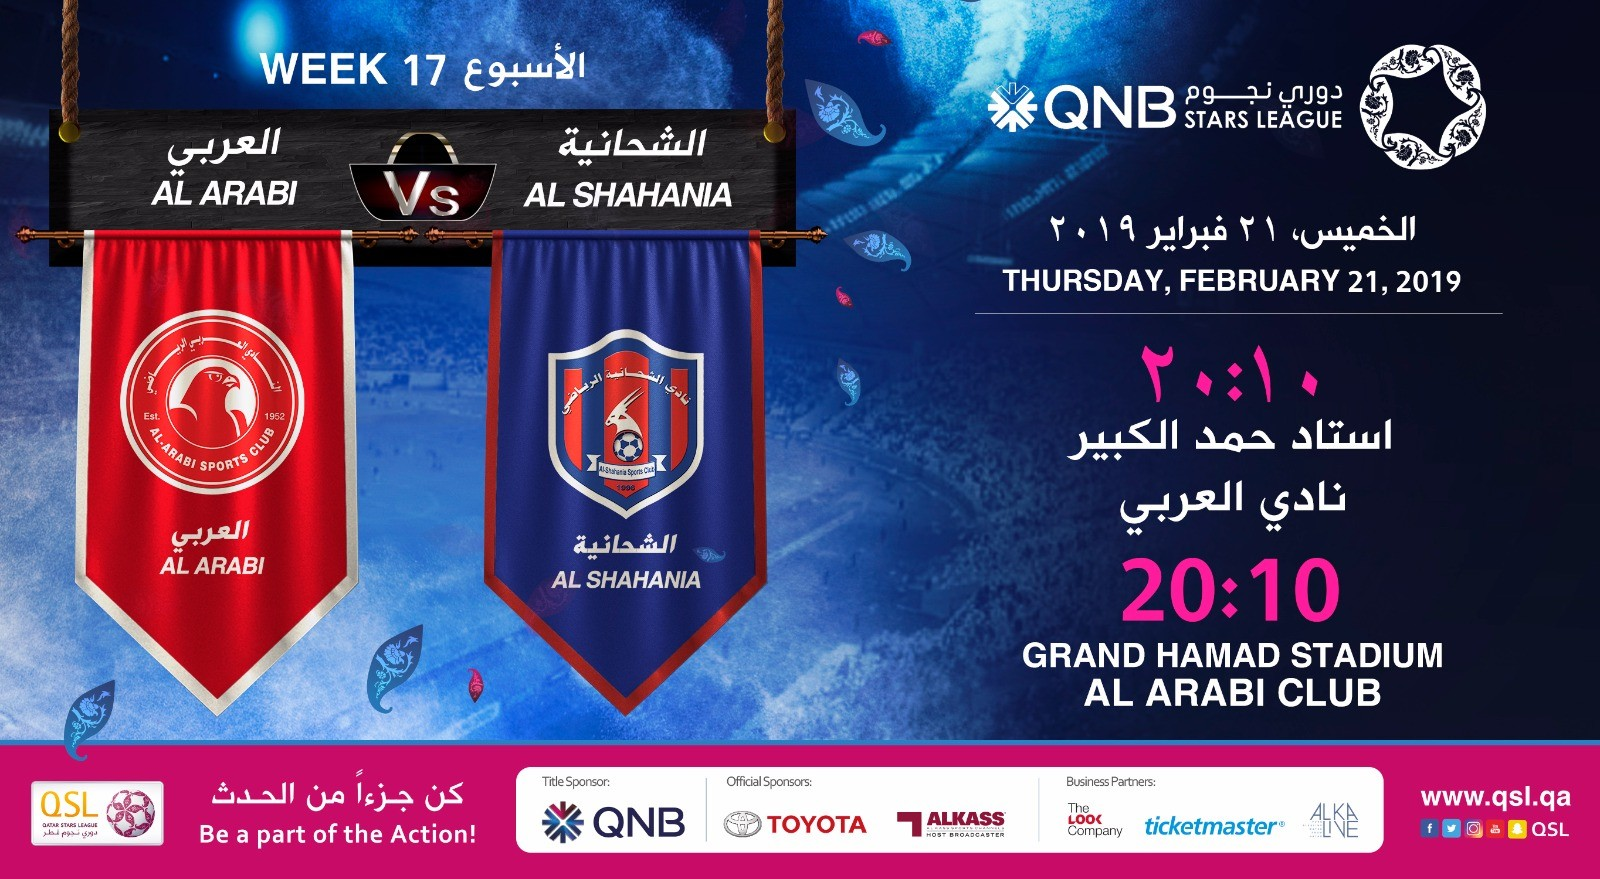 QNB Stars League Week 17 — Al Arabi vs Al Shahania